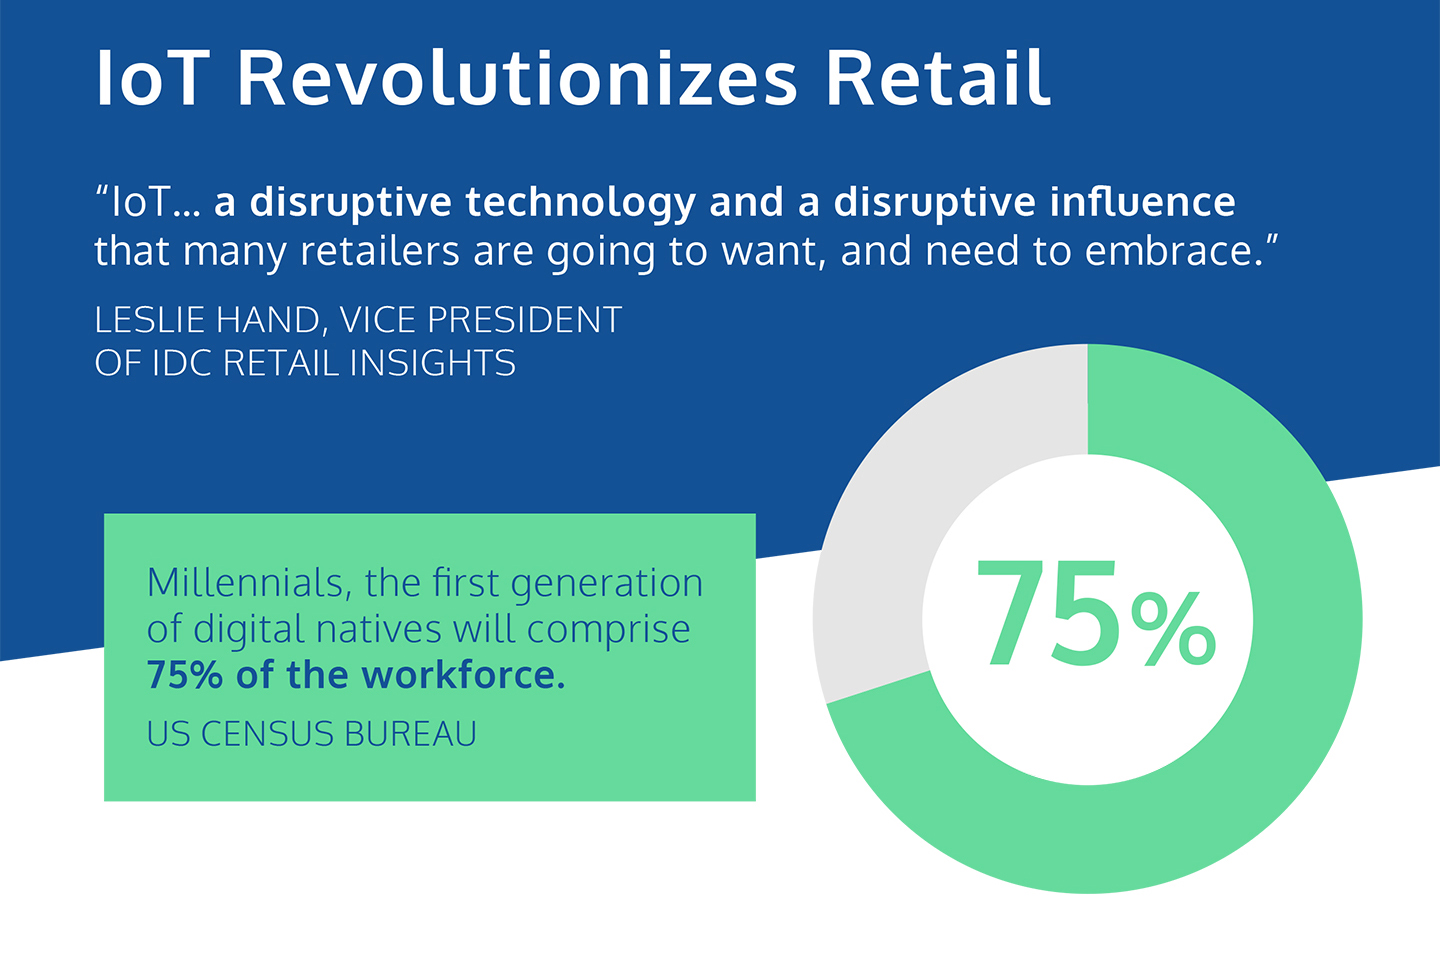 'IoT... a disruptive technology and disruptive influence, that many retailers are going to want and need to embrace.'